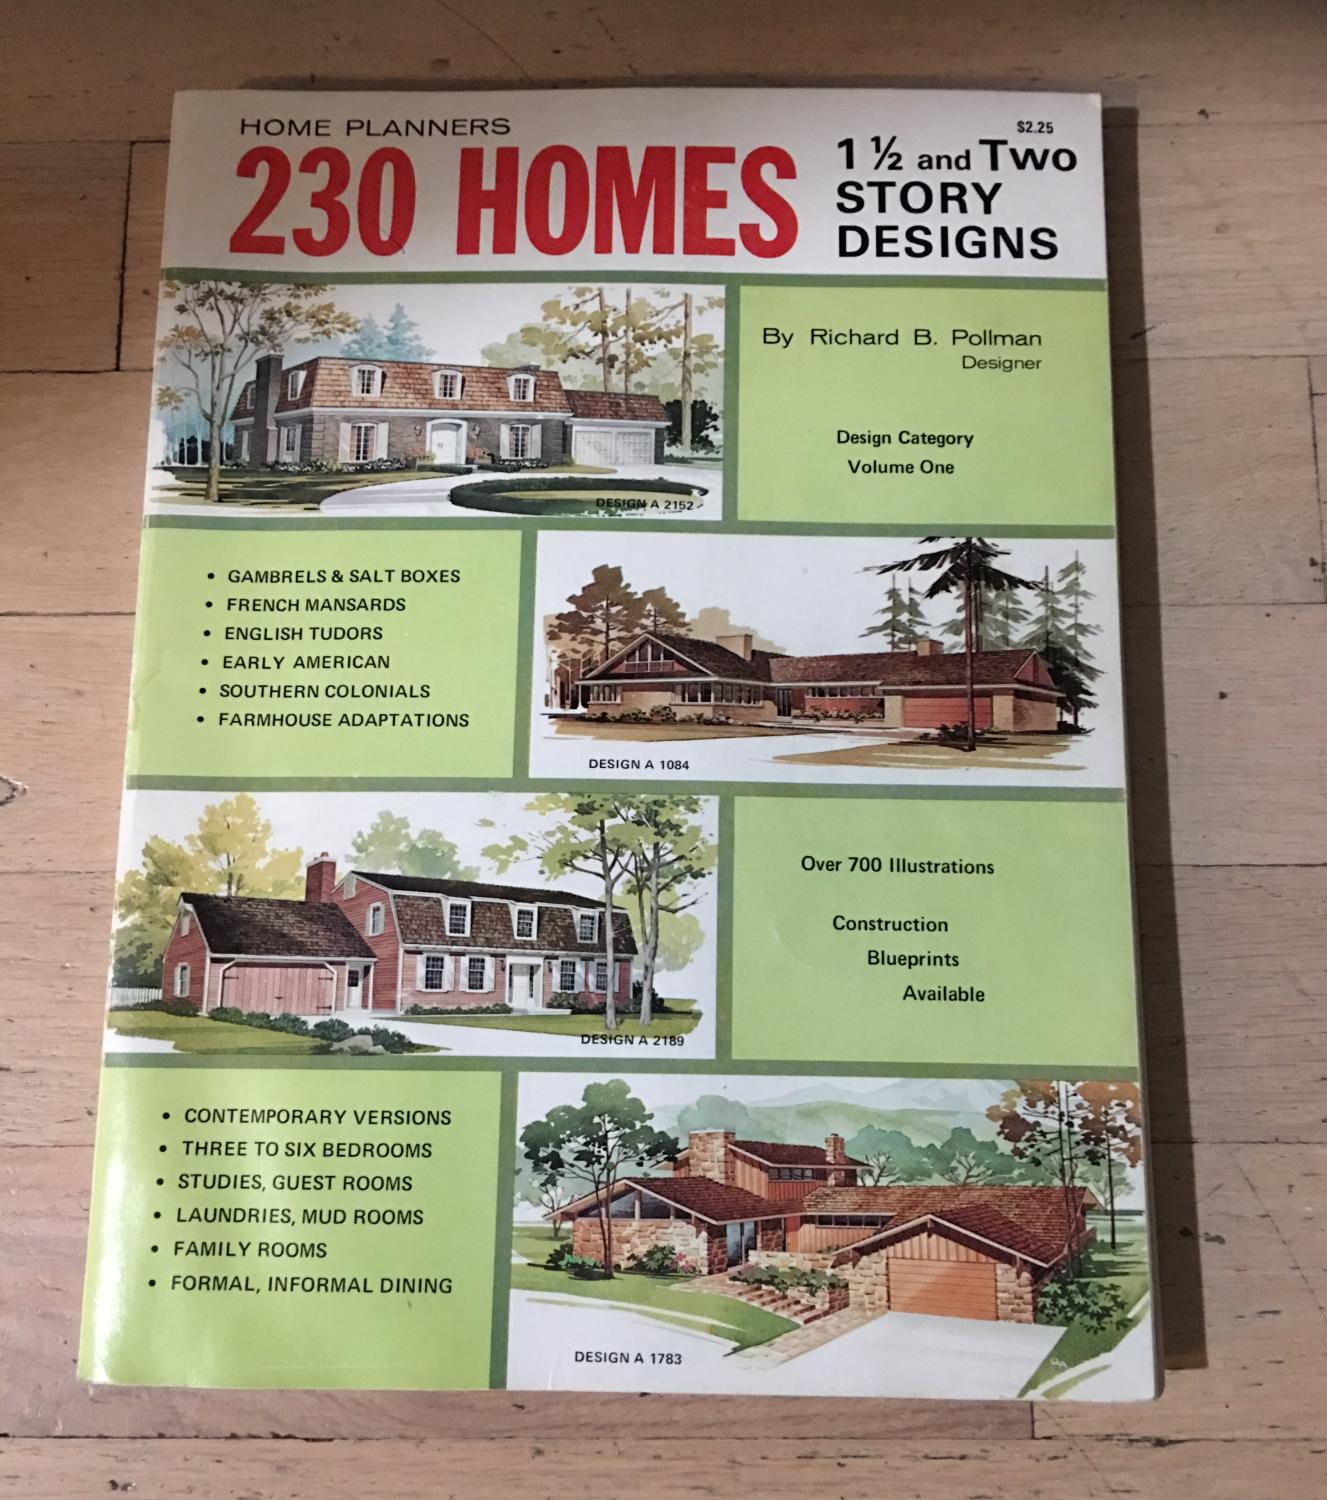 Home Planners 230 Homes ~1 1/2 And Two Story Designs: Richard B